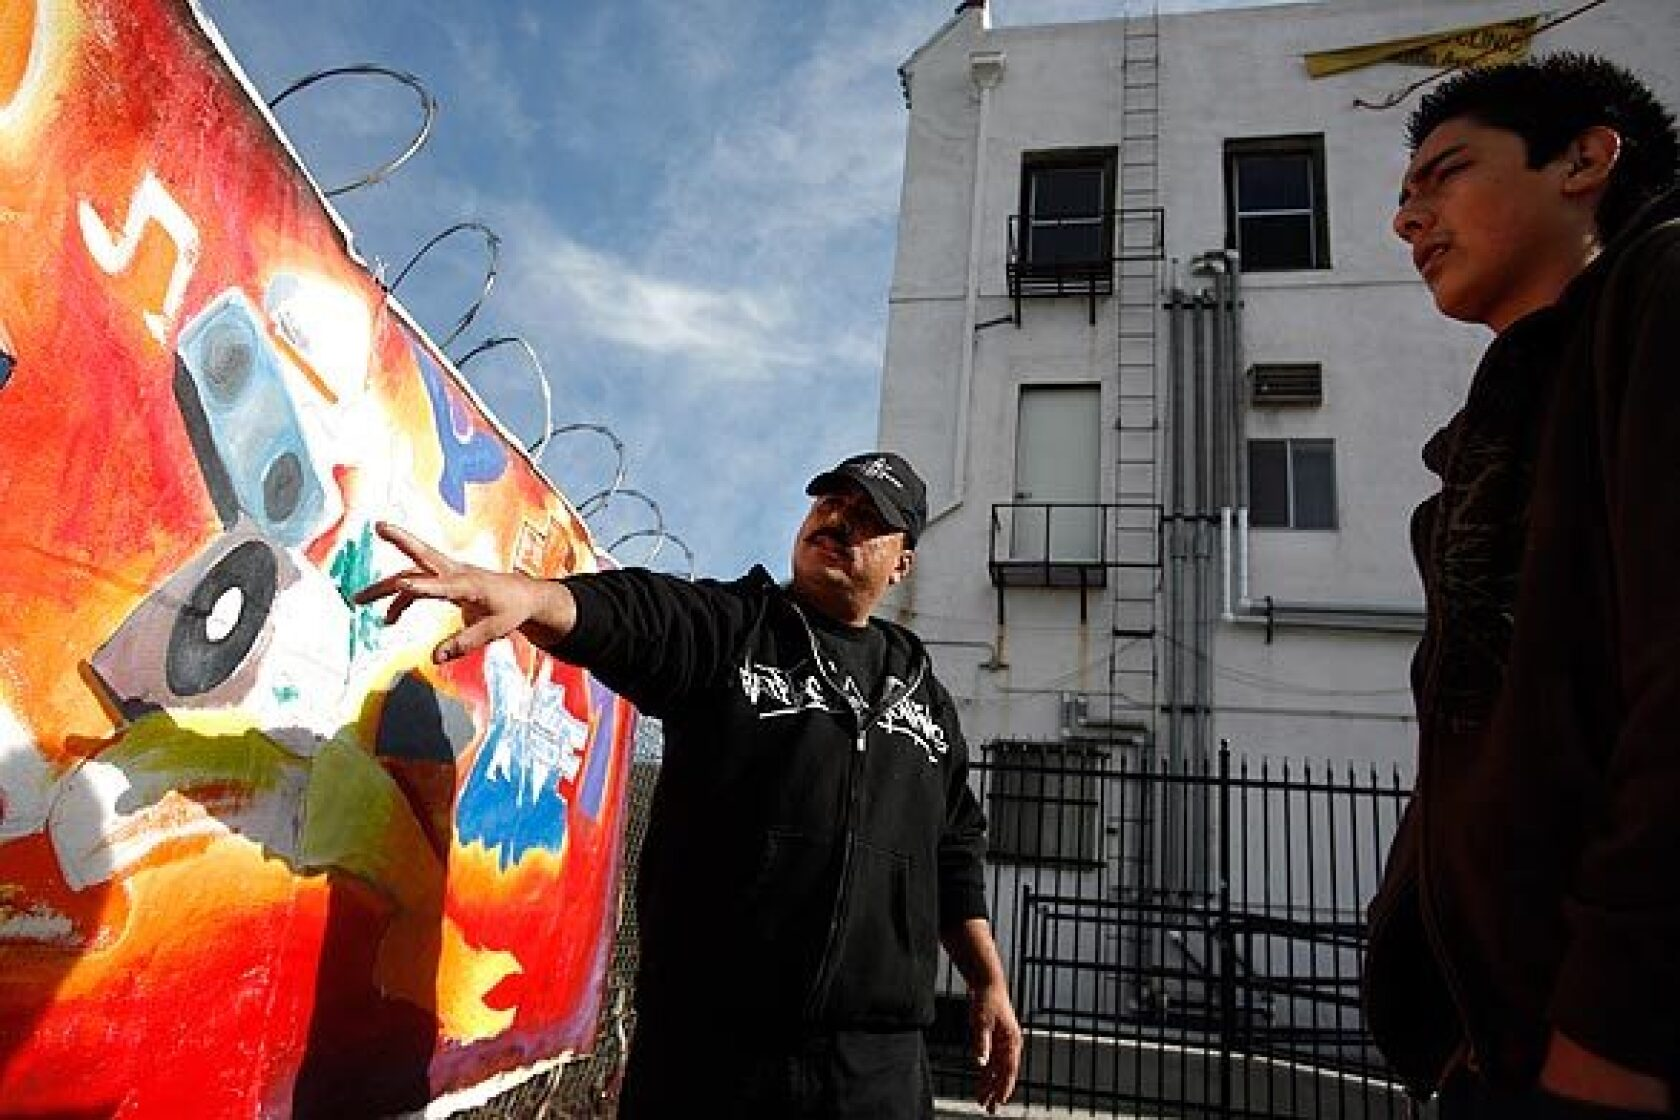 Former tagger now teaches art - Los Angeles Times